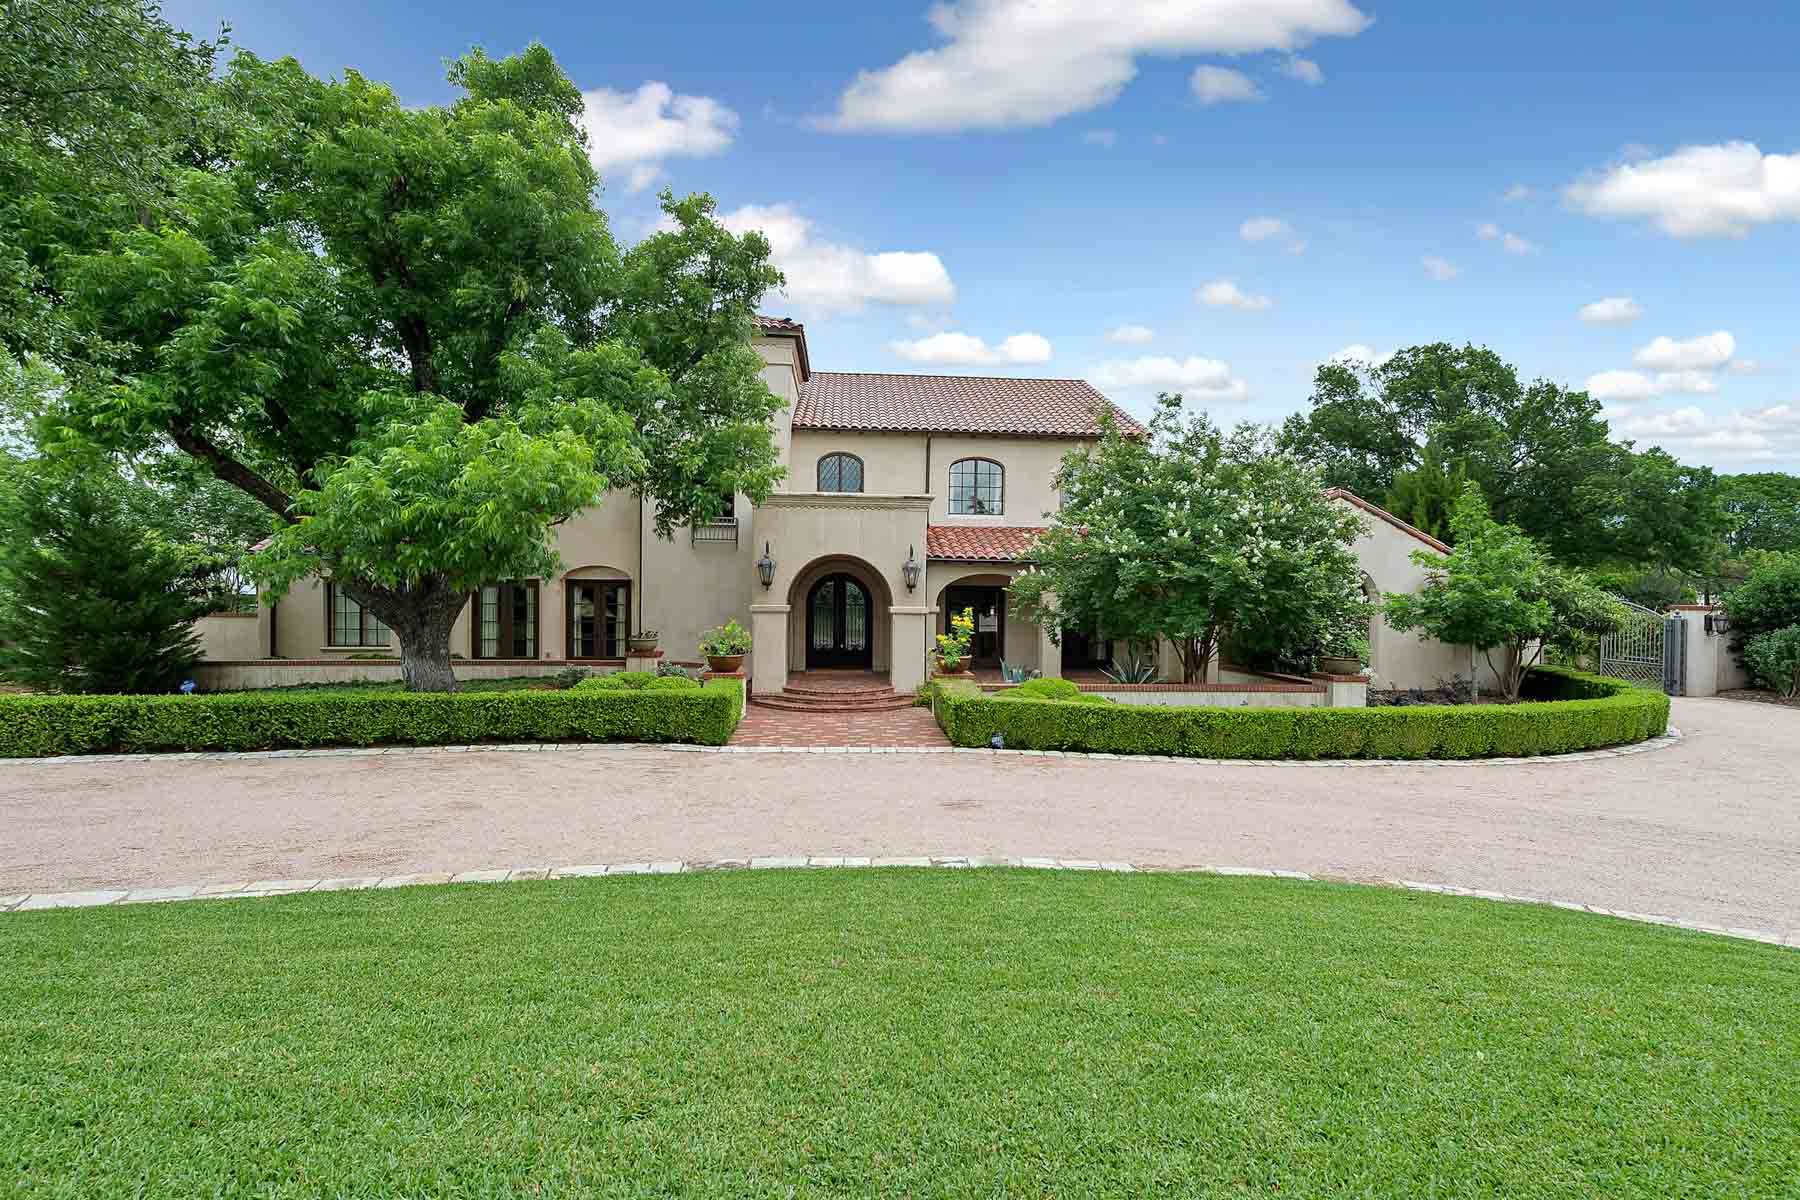 Villa per Vendita alle ore Beautiful Spanish Inspired Fort Worth Home 2017 Four Oaks Fort Worth, Texas, 76107 Stati Uniti